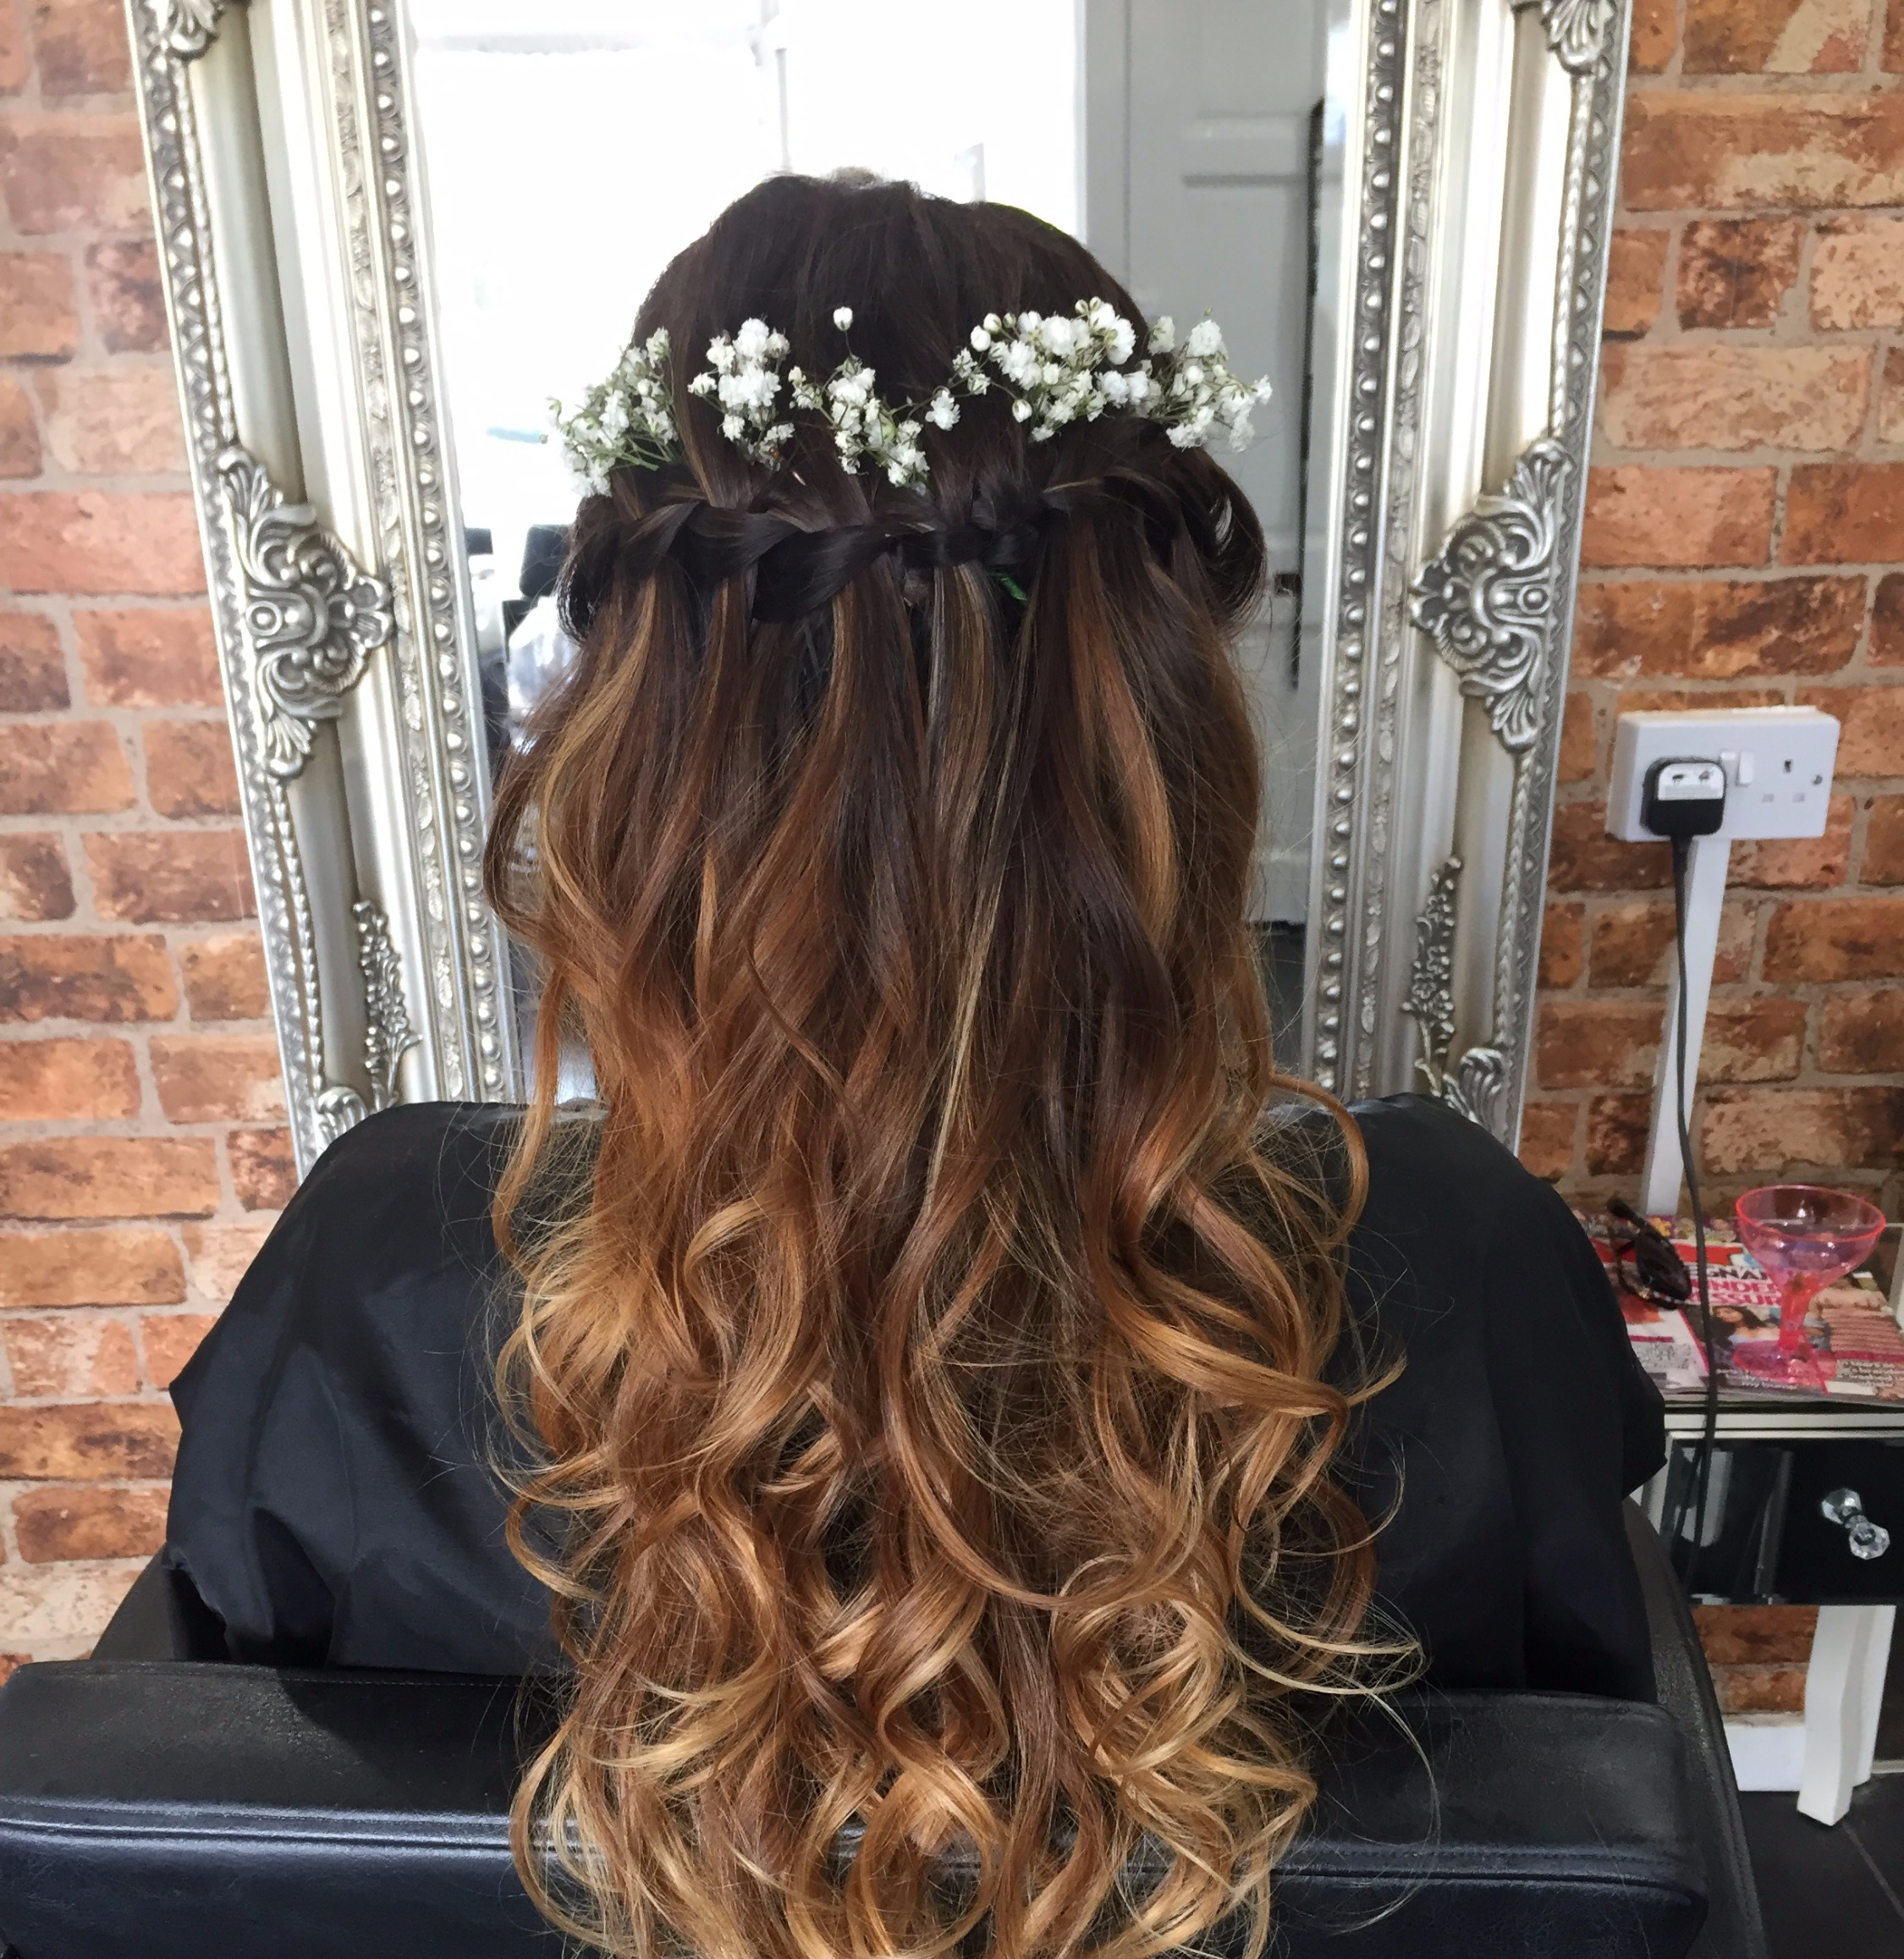 wedding hair with natural curls left in loose wave with half undo finished with flowers in the hair